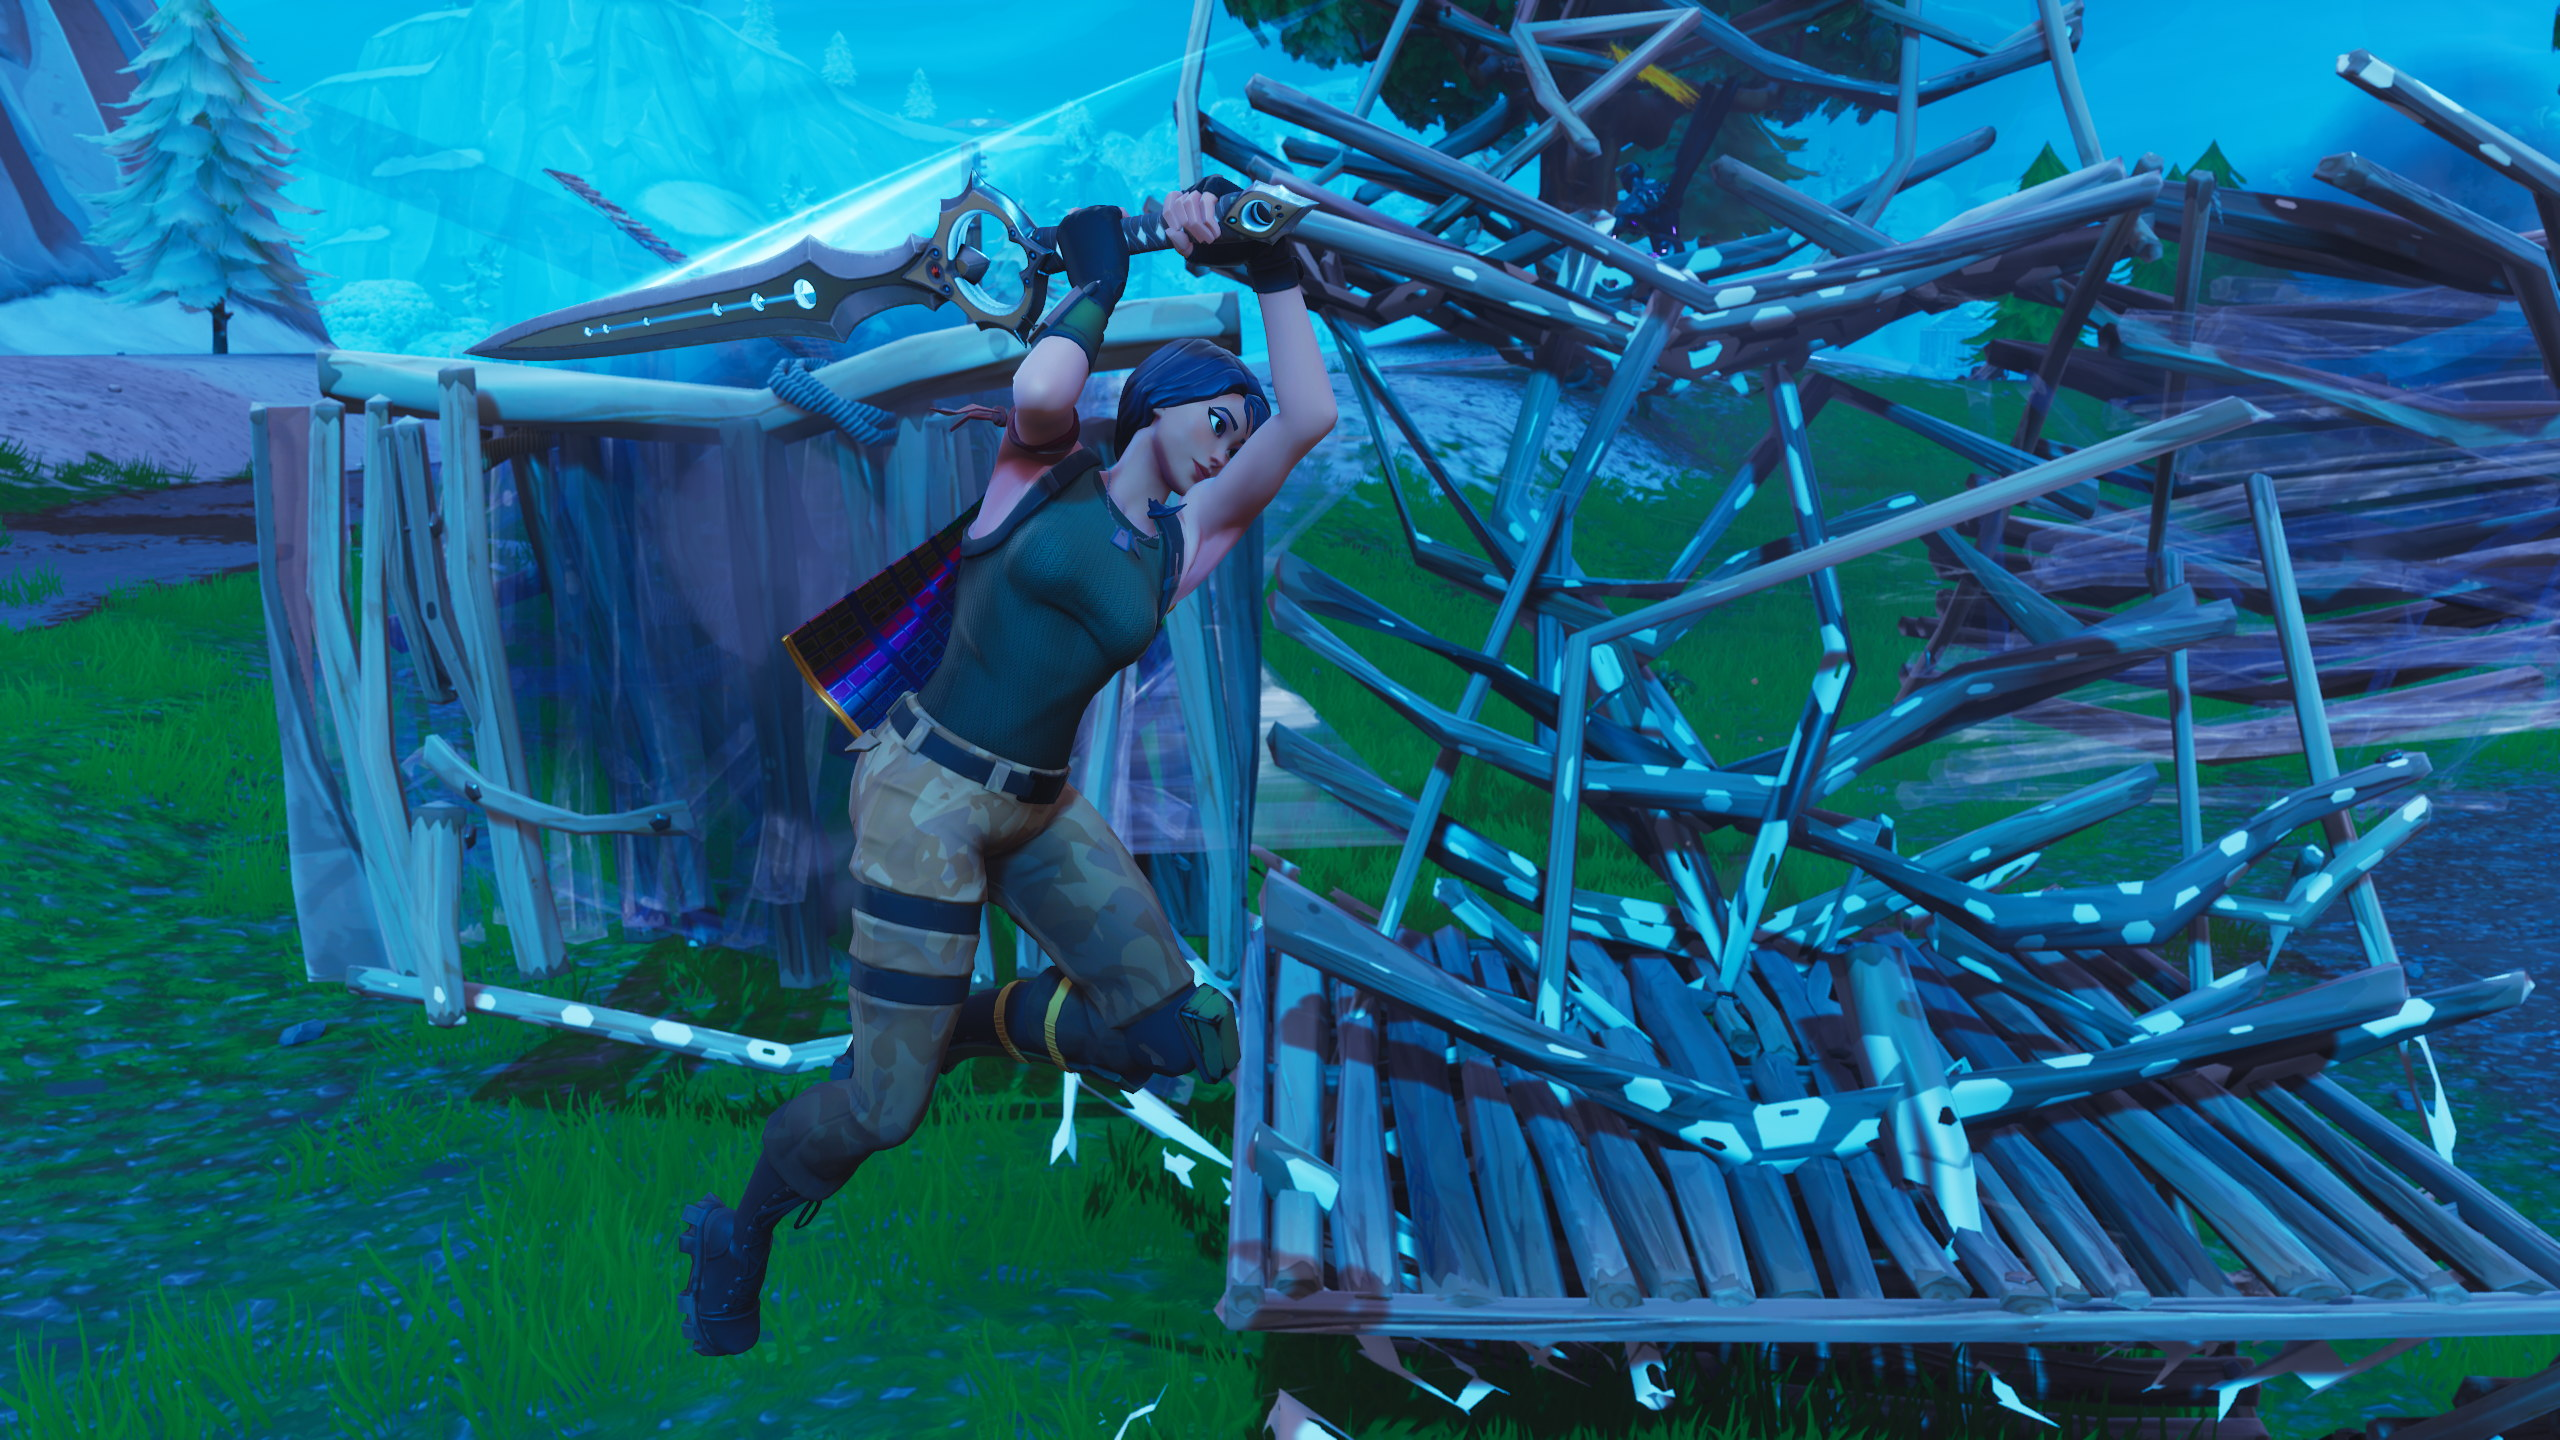 - fortnite infinity blade images